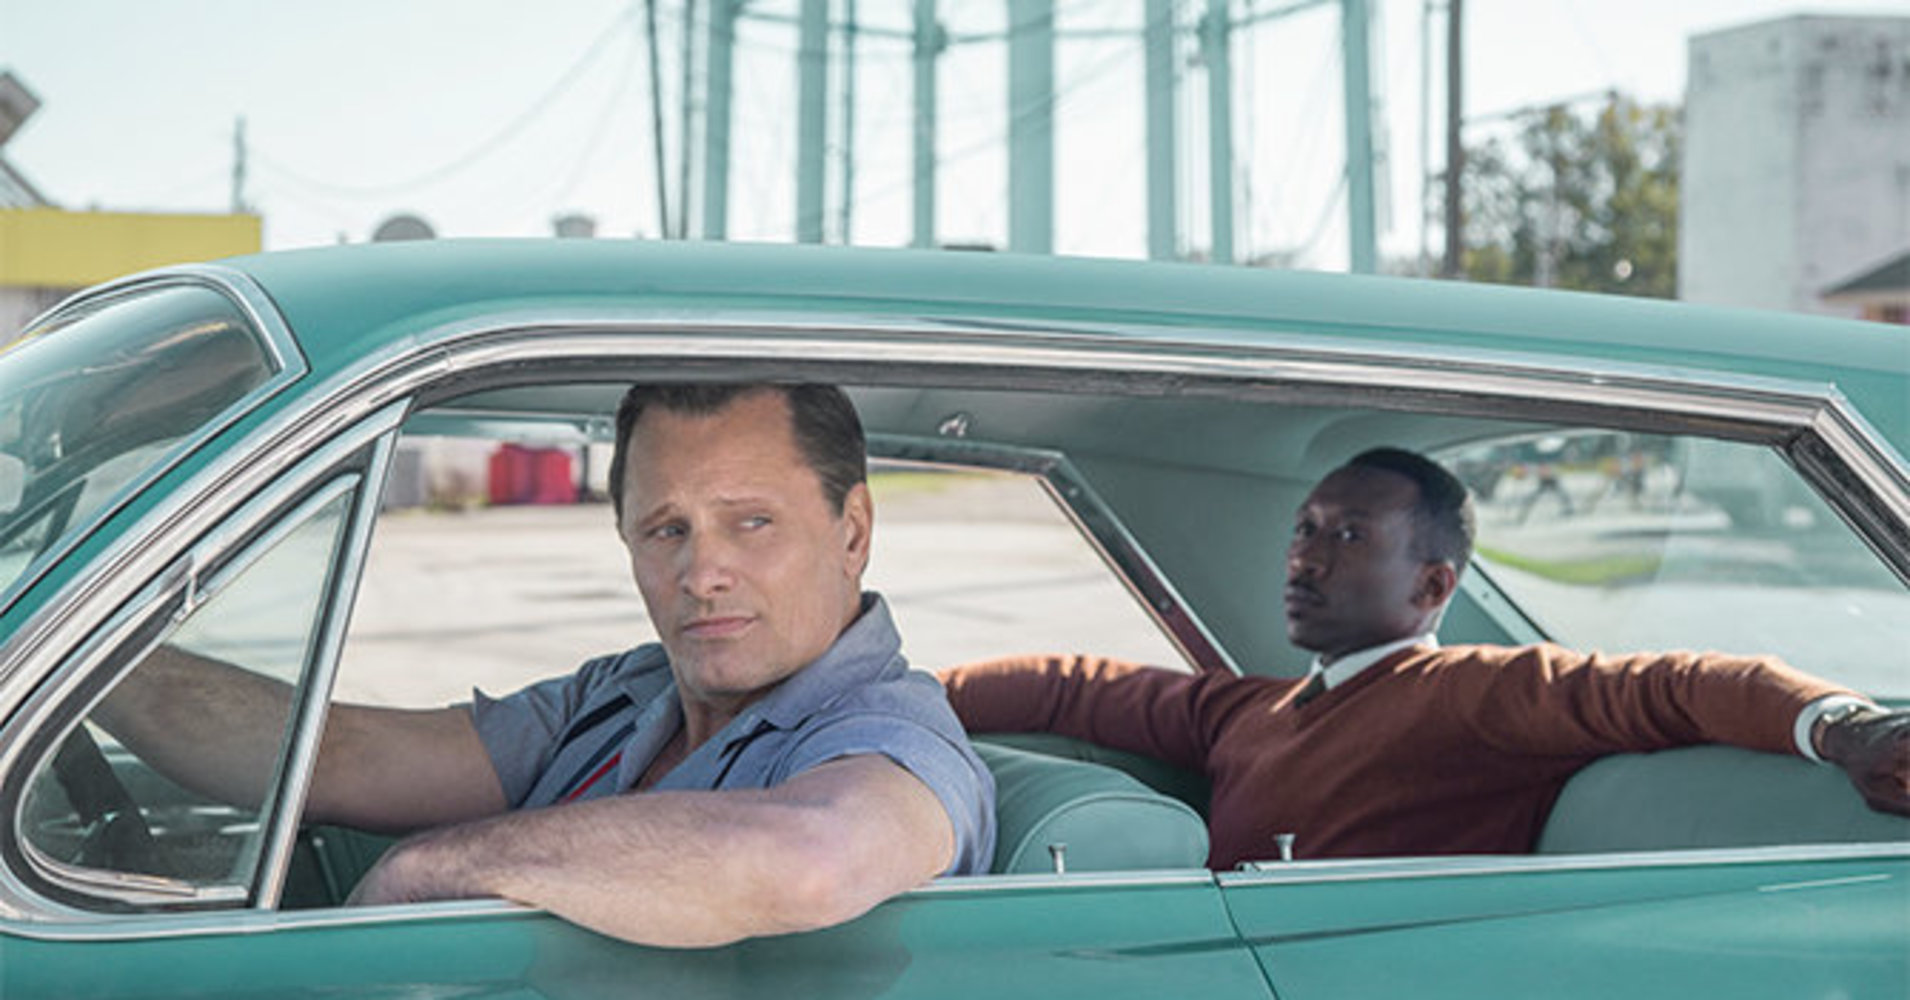 'Green Book' Is As Disappointing As It Is Tone-Deaf On Race